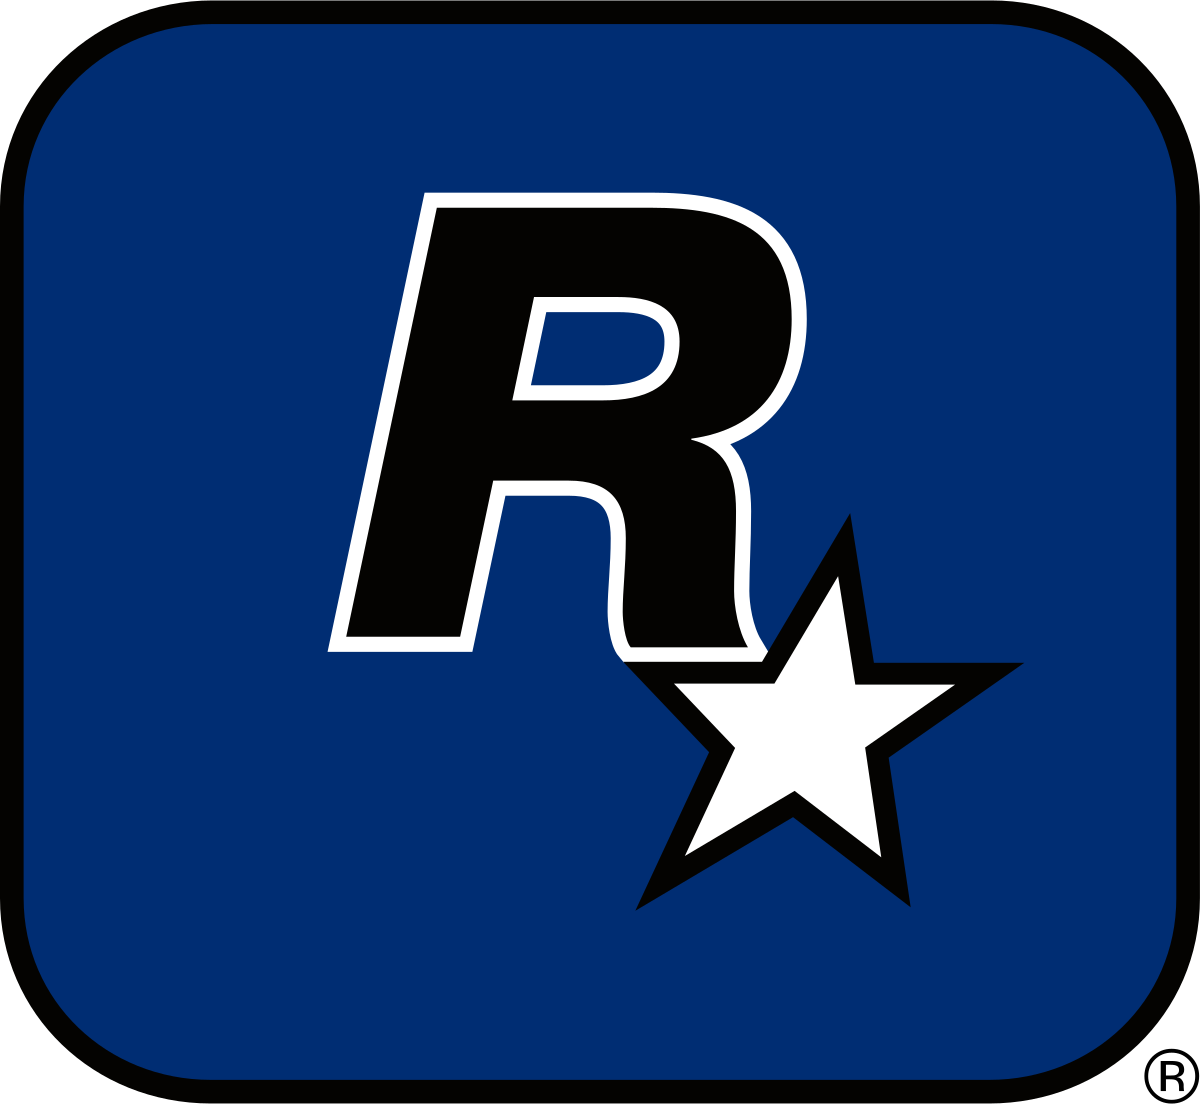 Game awards 2015 clipart graphic free library List of accolades received by Grand Theft Auto V - Wikipedia graphic free library